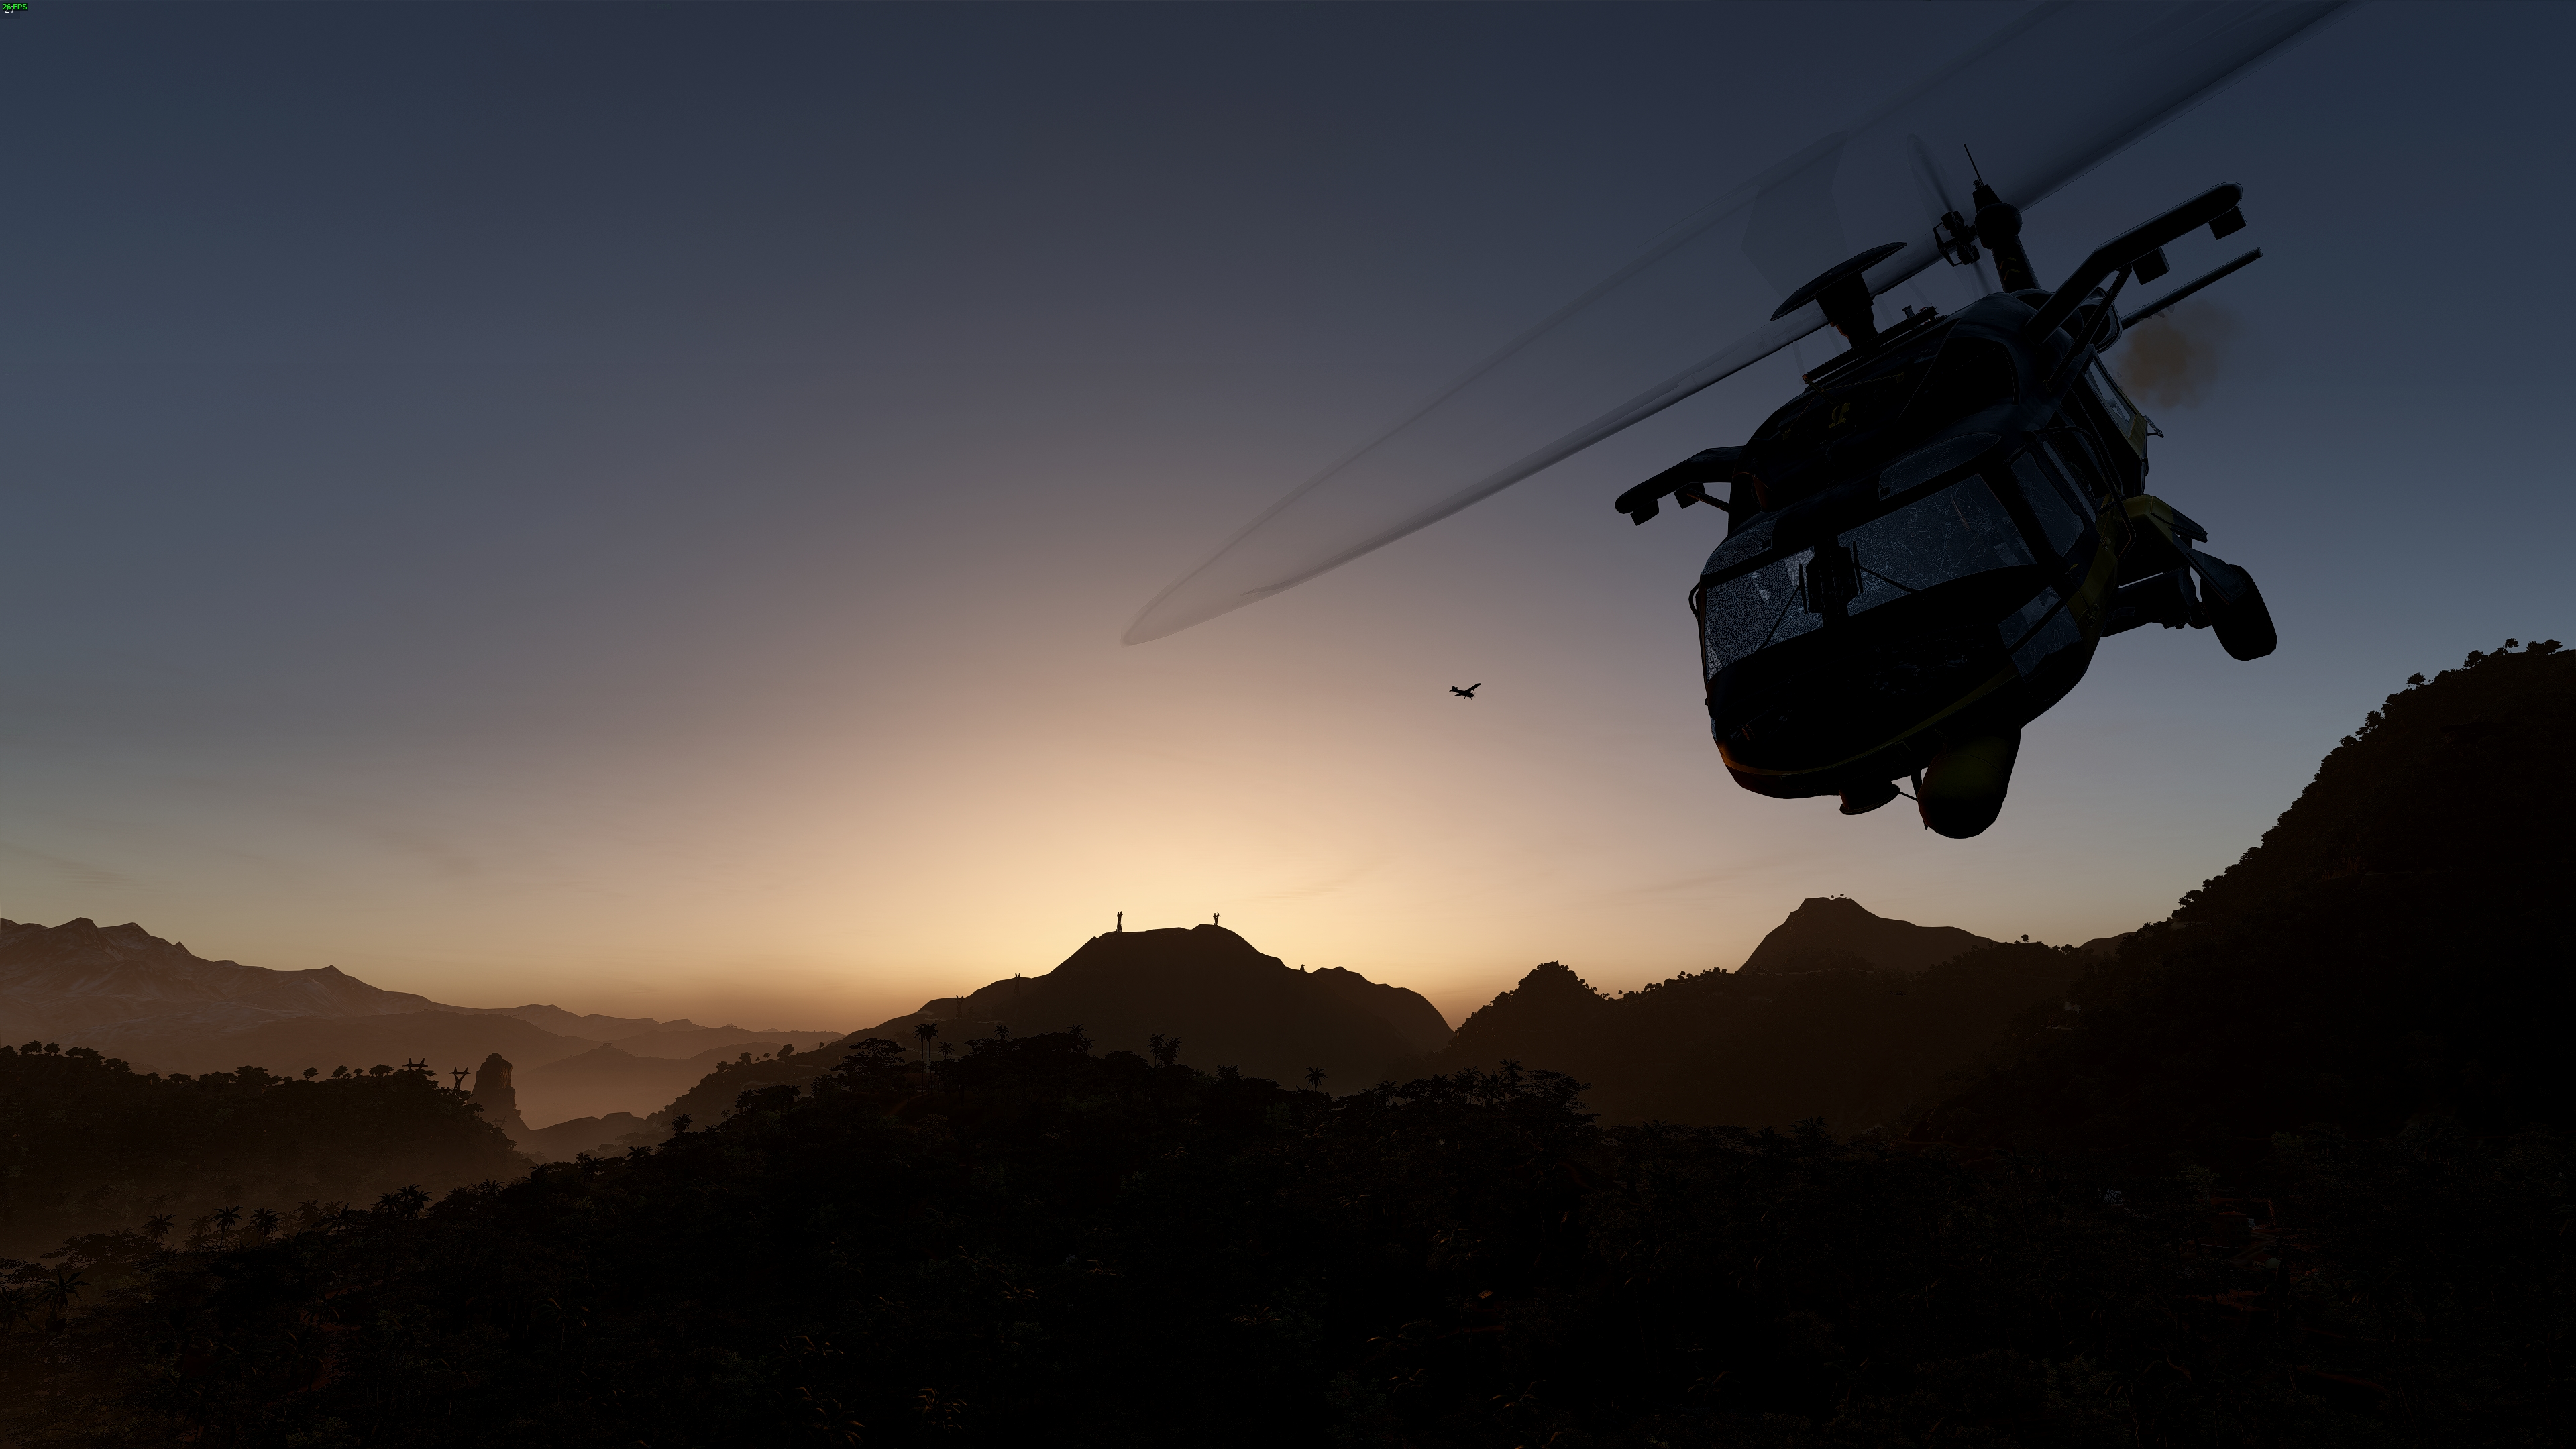 Tom-Clancy-s-Ghost-Recon--Wildlands-Super-Resolution-2018.12.29---00.59.39.93-1